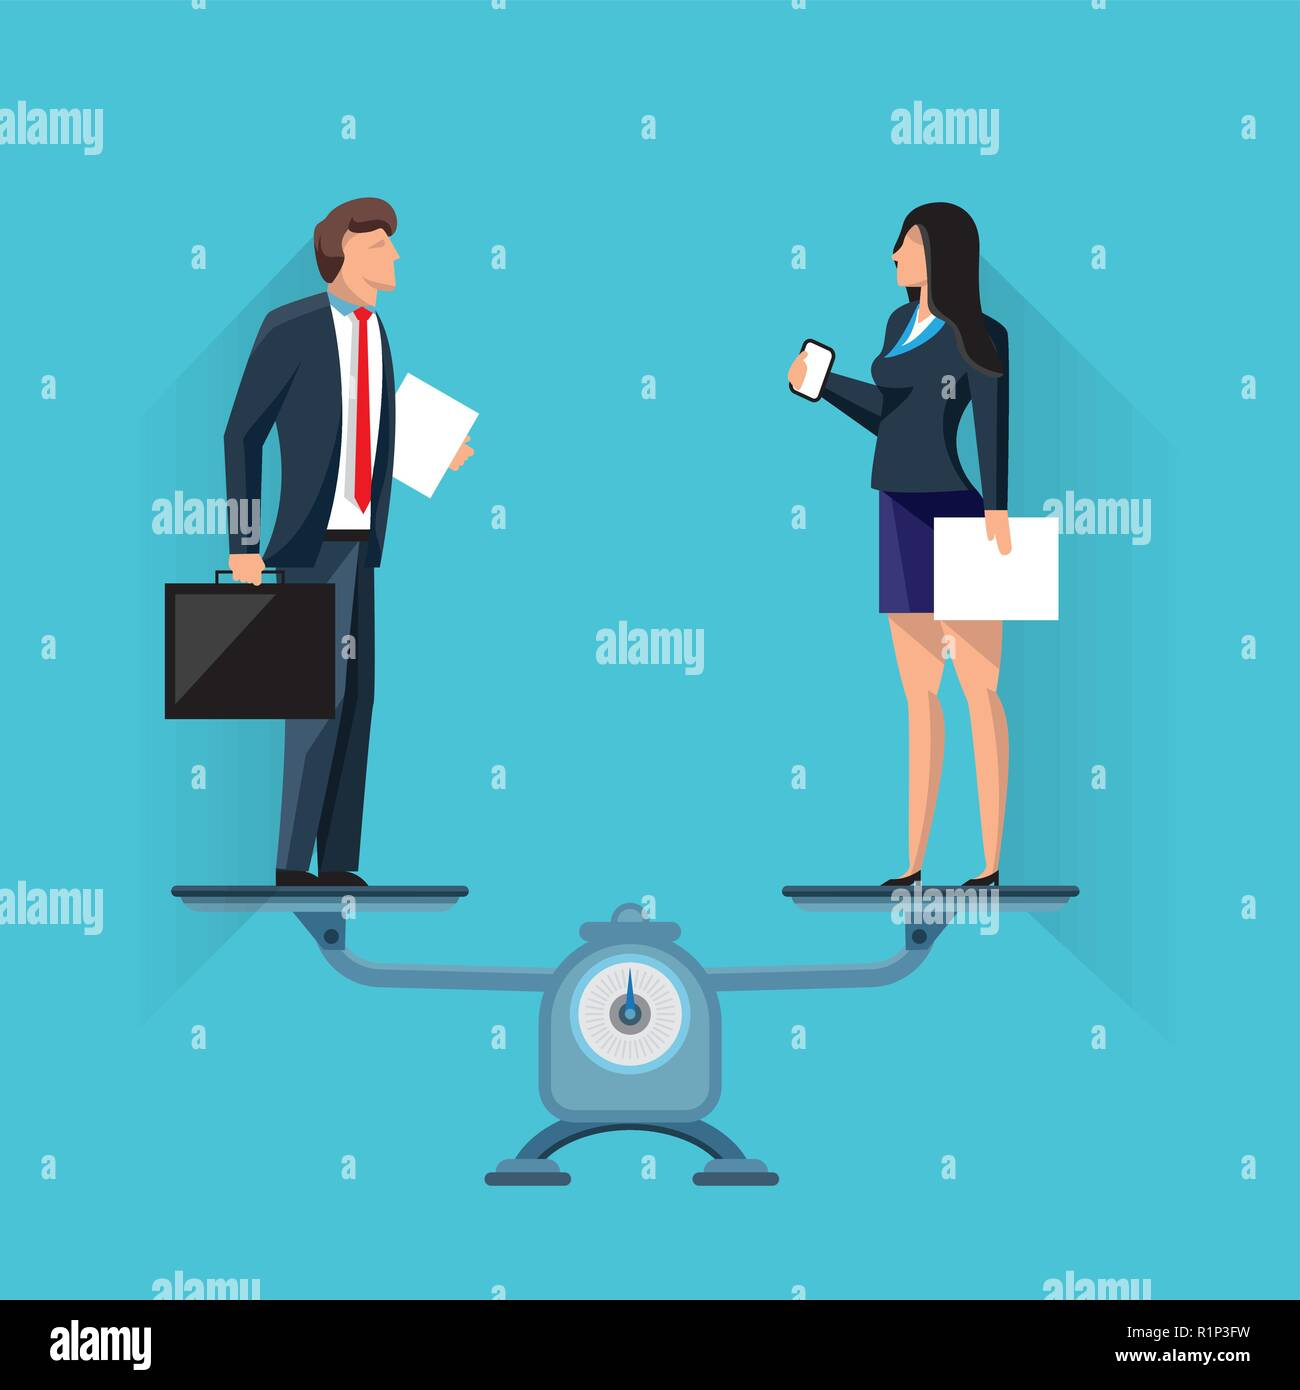 Businesspeople standing on scales in balance - Stock Vector